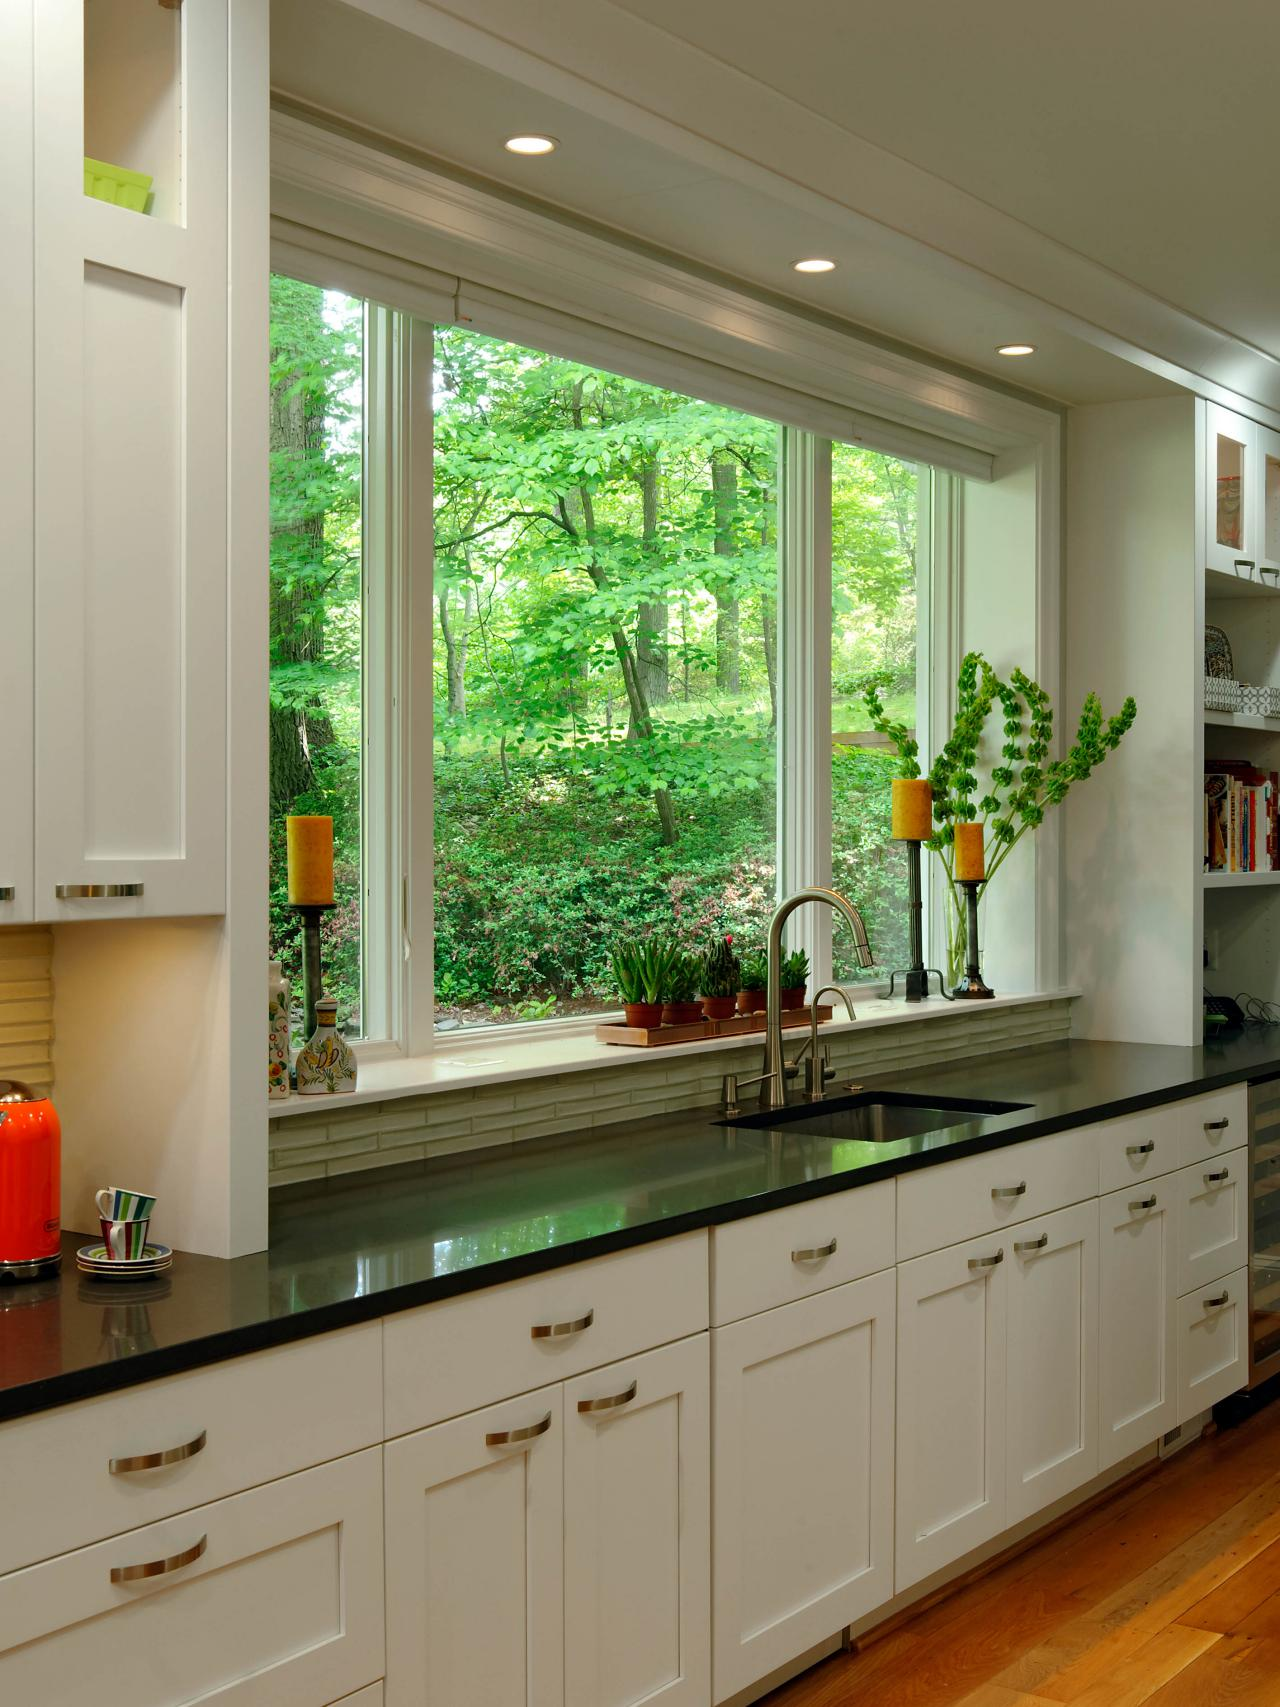 Kitchen Remodeling Blog: Kitchen Window Treatments Ideas